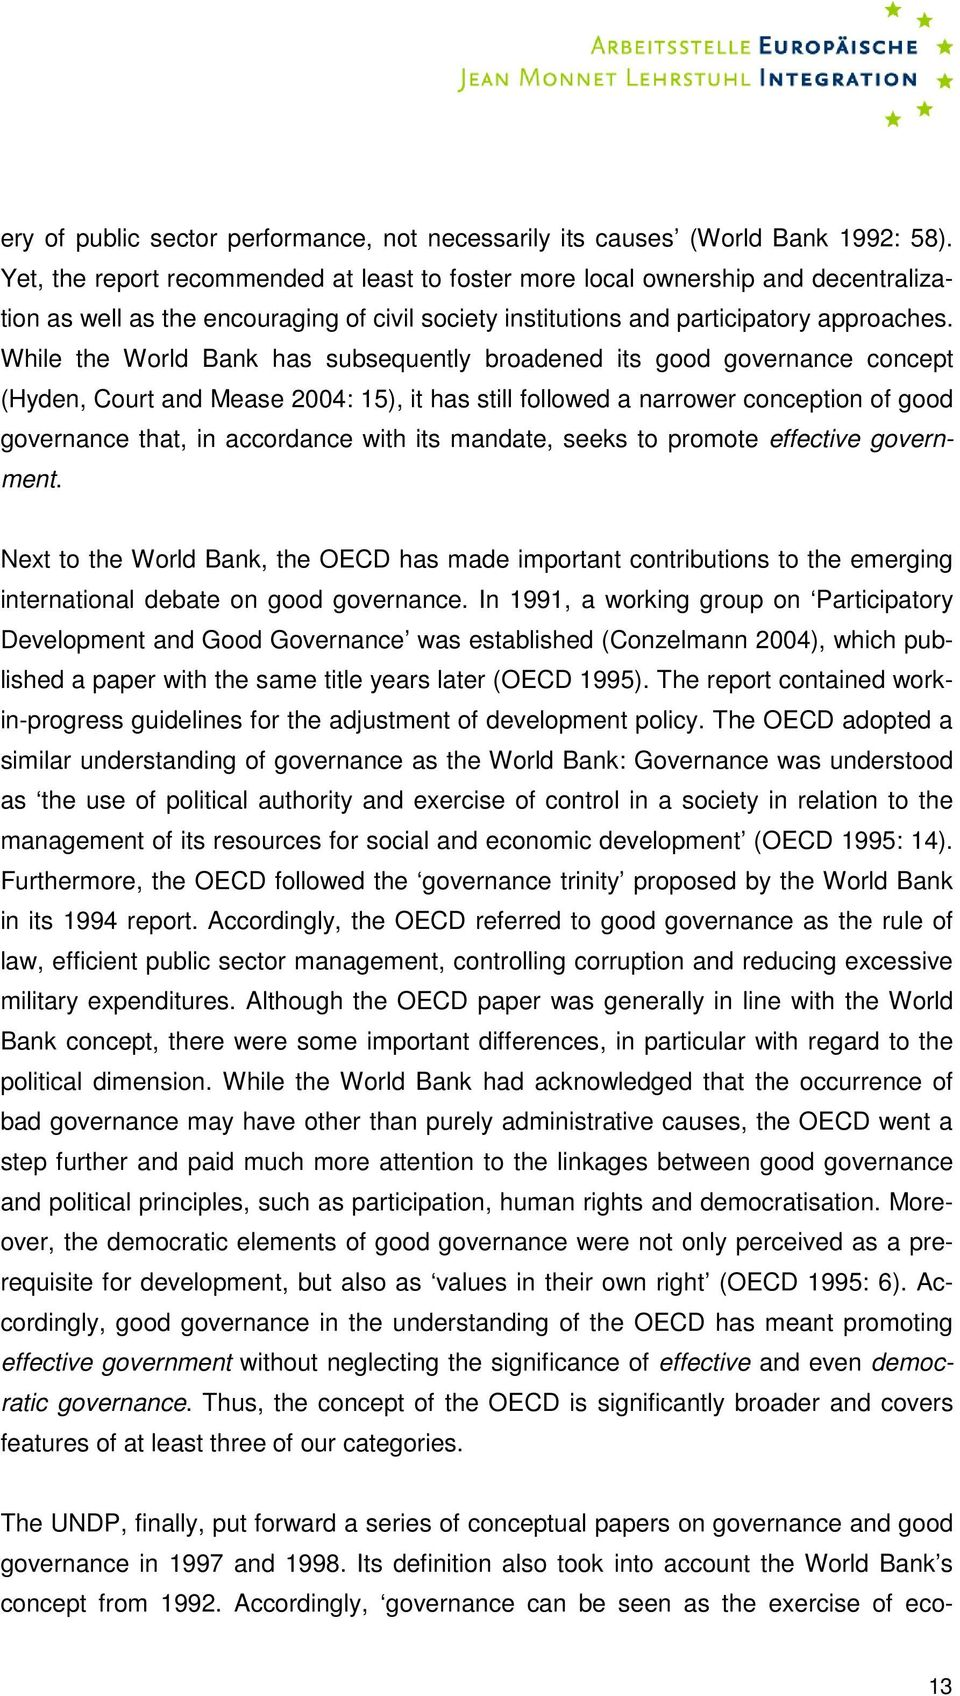 While the World Bank has subsequently broadened its good governance concept (Hyden, Court and Mease 2004: 15), it has still followed a narrower conception of good governance that, in accordance with